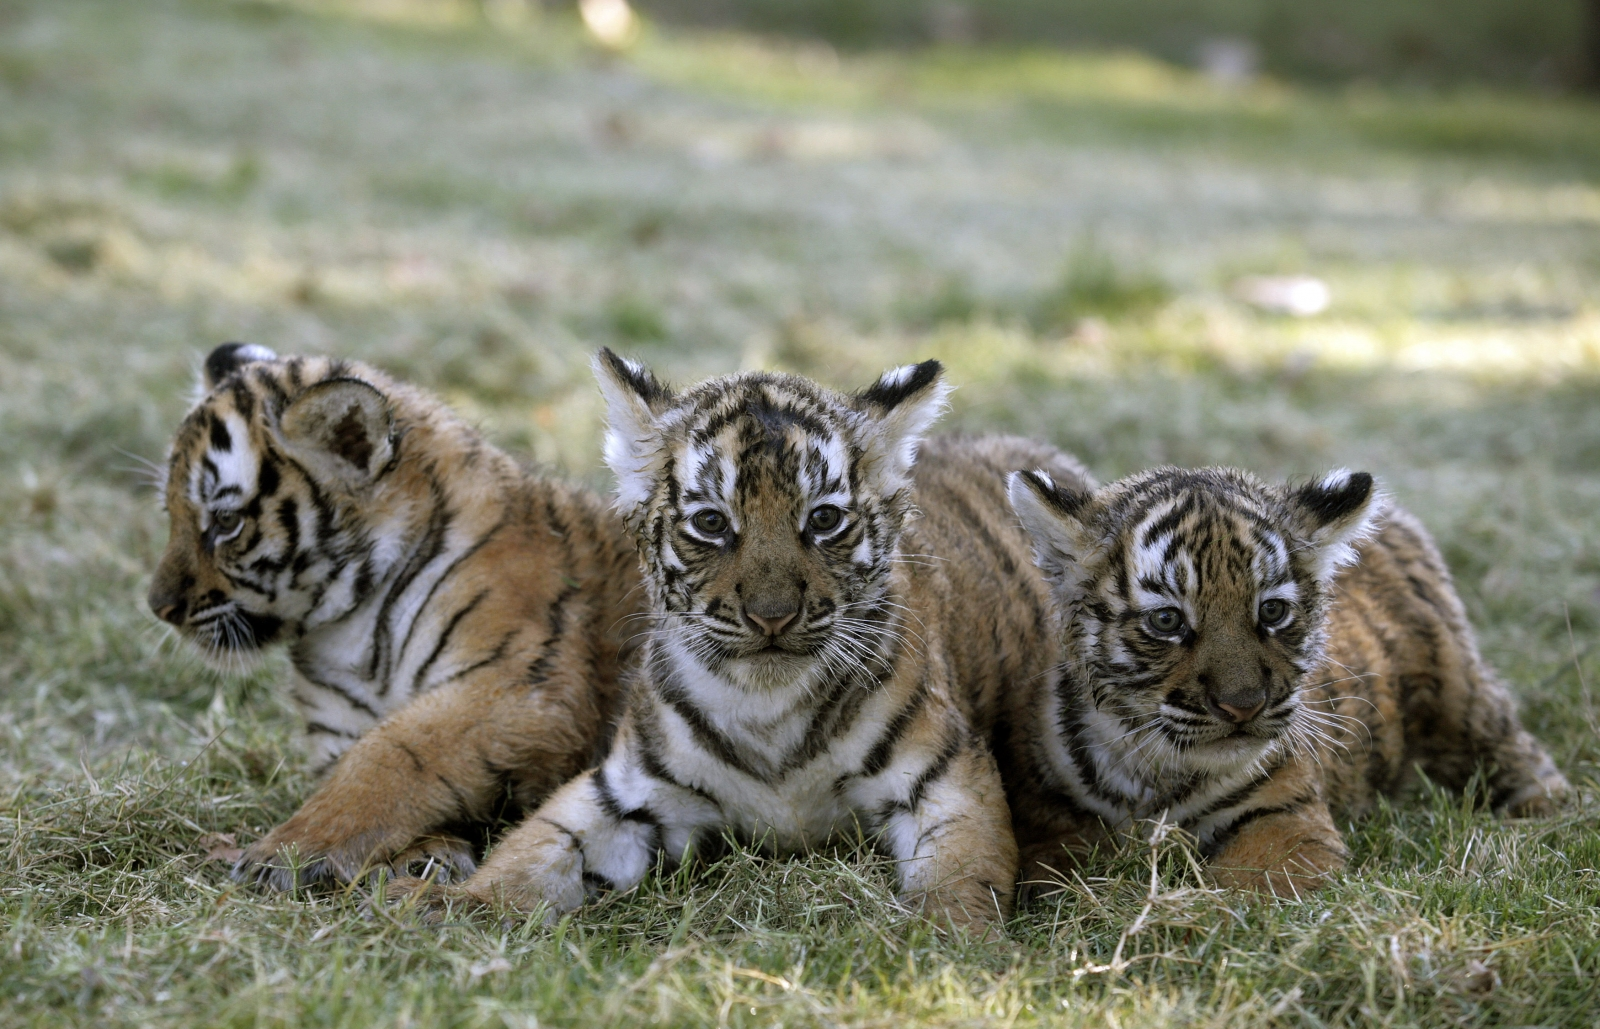 Wildlife Conservation: Scat Used to Identify Tigers and Leopards in Genetic Breakthrough